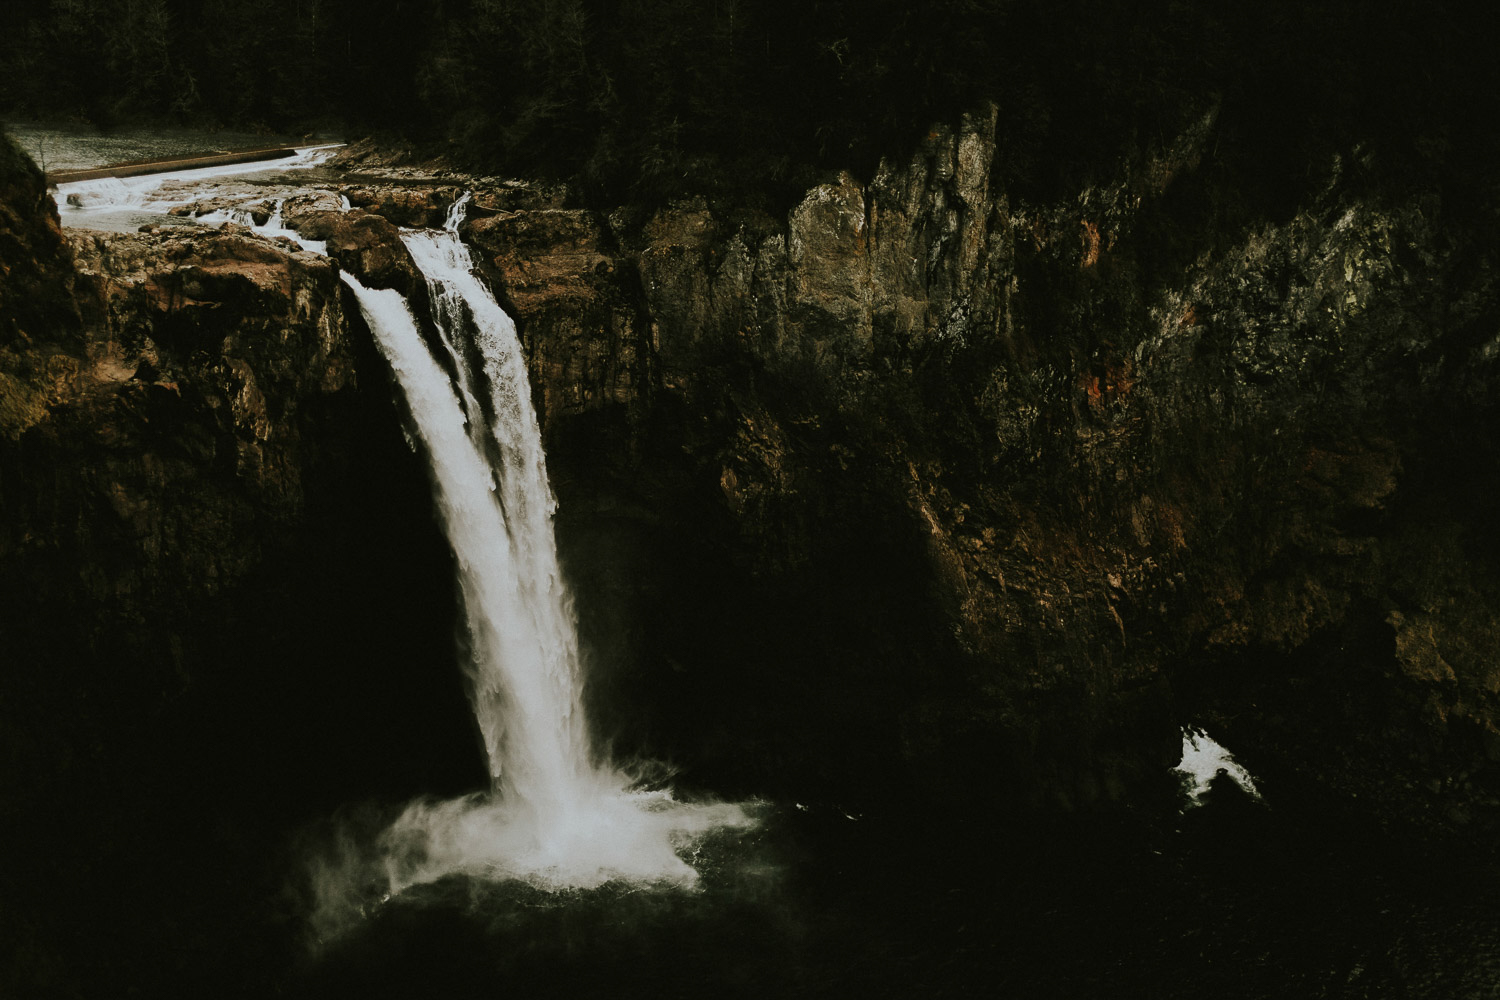 Image of Snoqualmie Falls